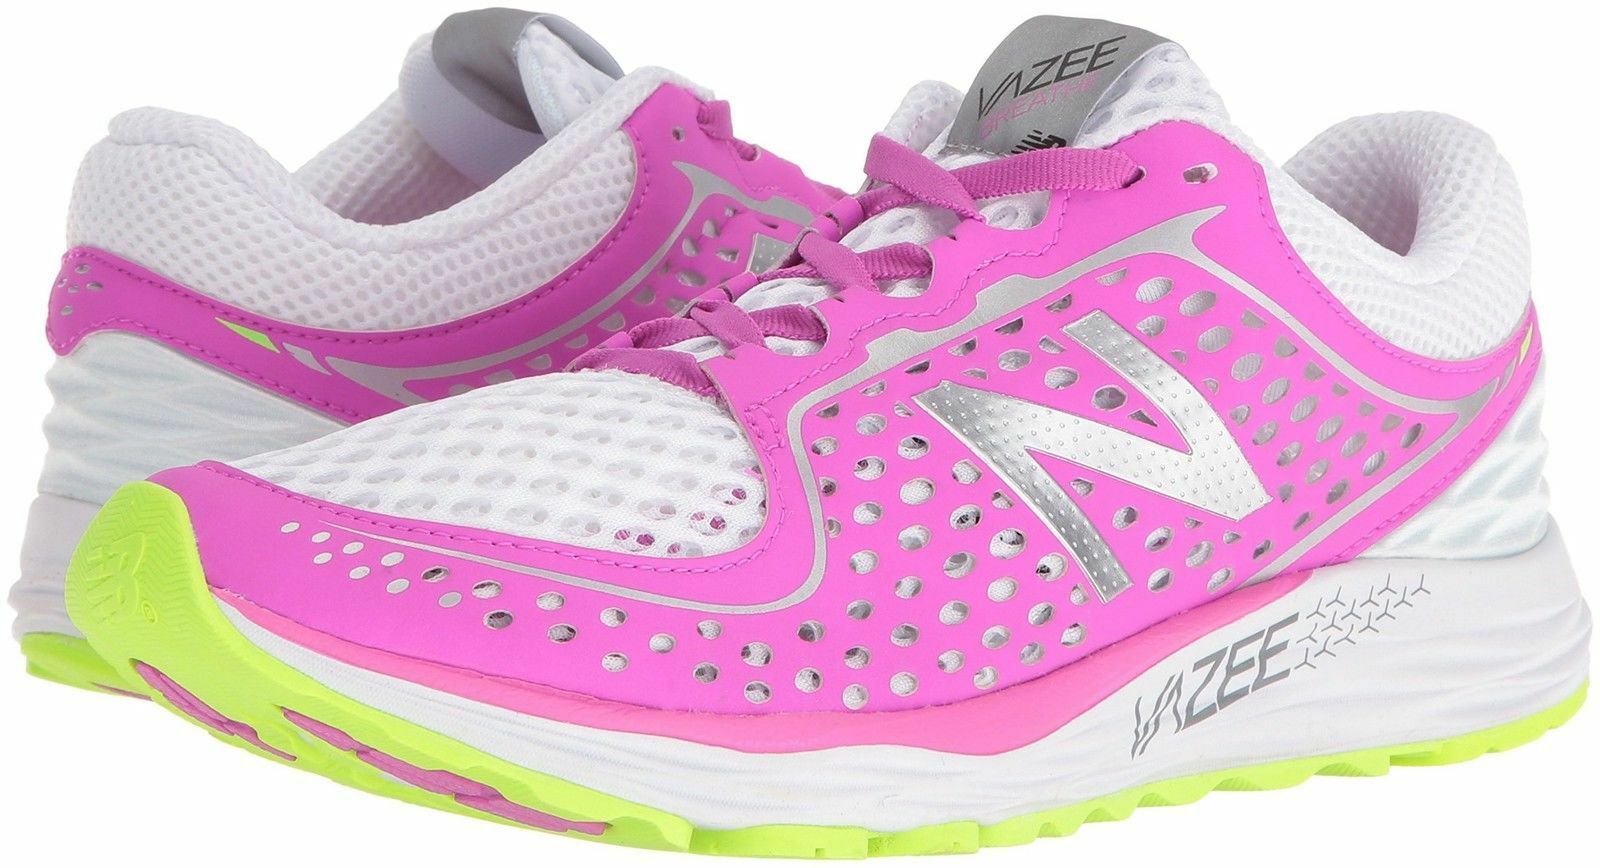 New Balance Vazee Breathe V1 Women's Competition Running Shoes WBREAHT SIZE 11W